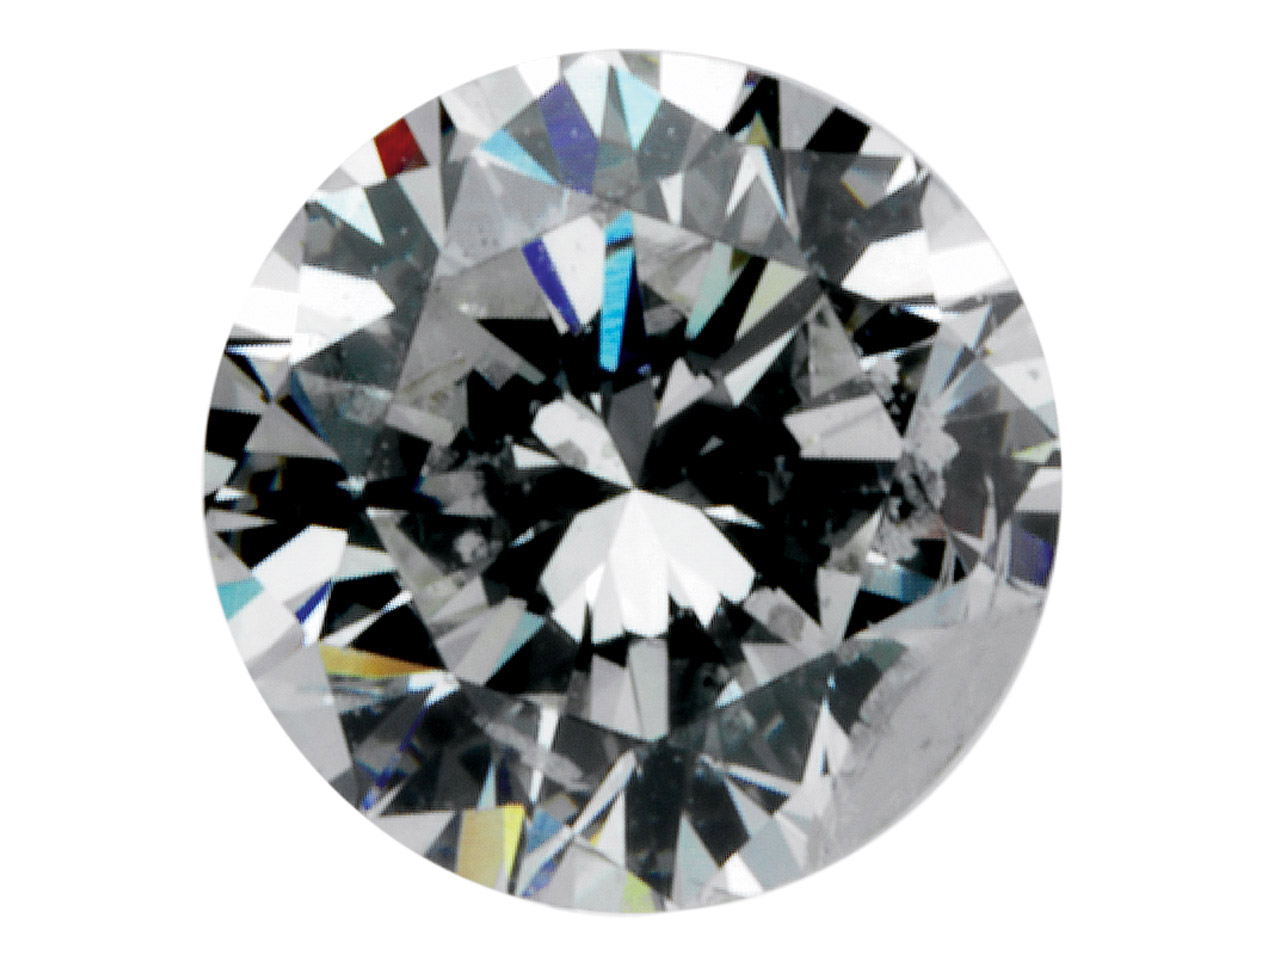 Diamond, Round, G/vs, 1pt/1.3mm